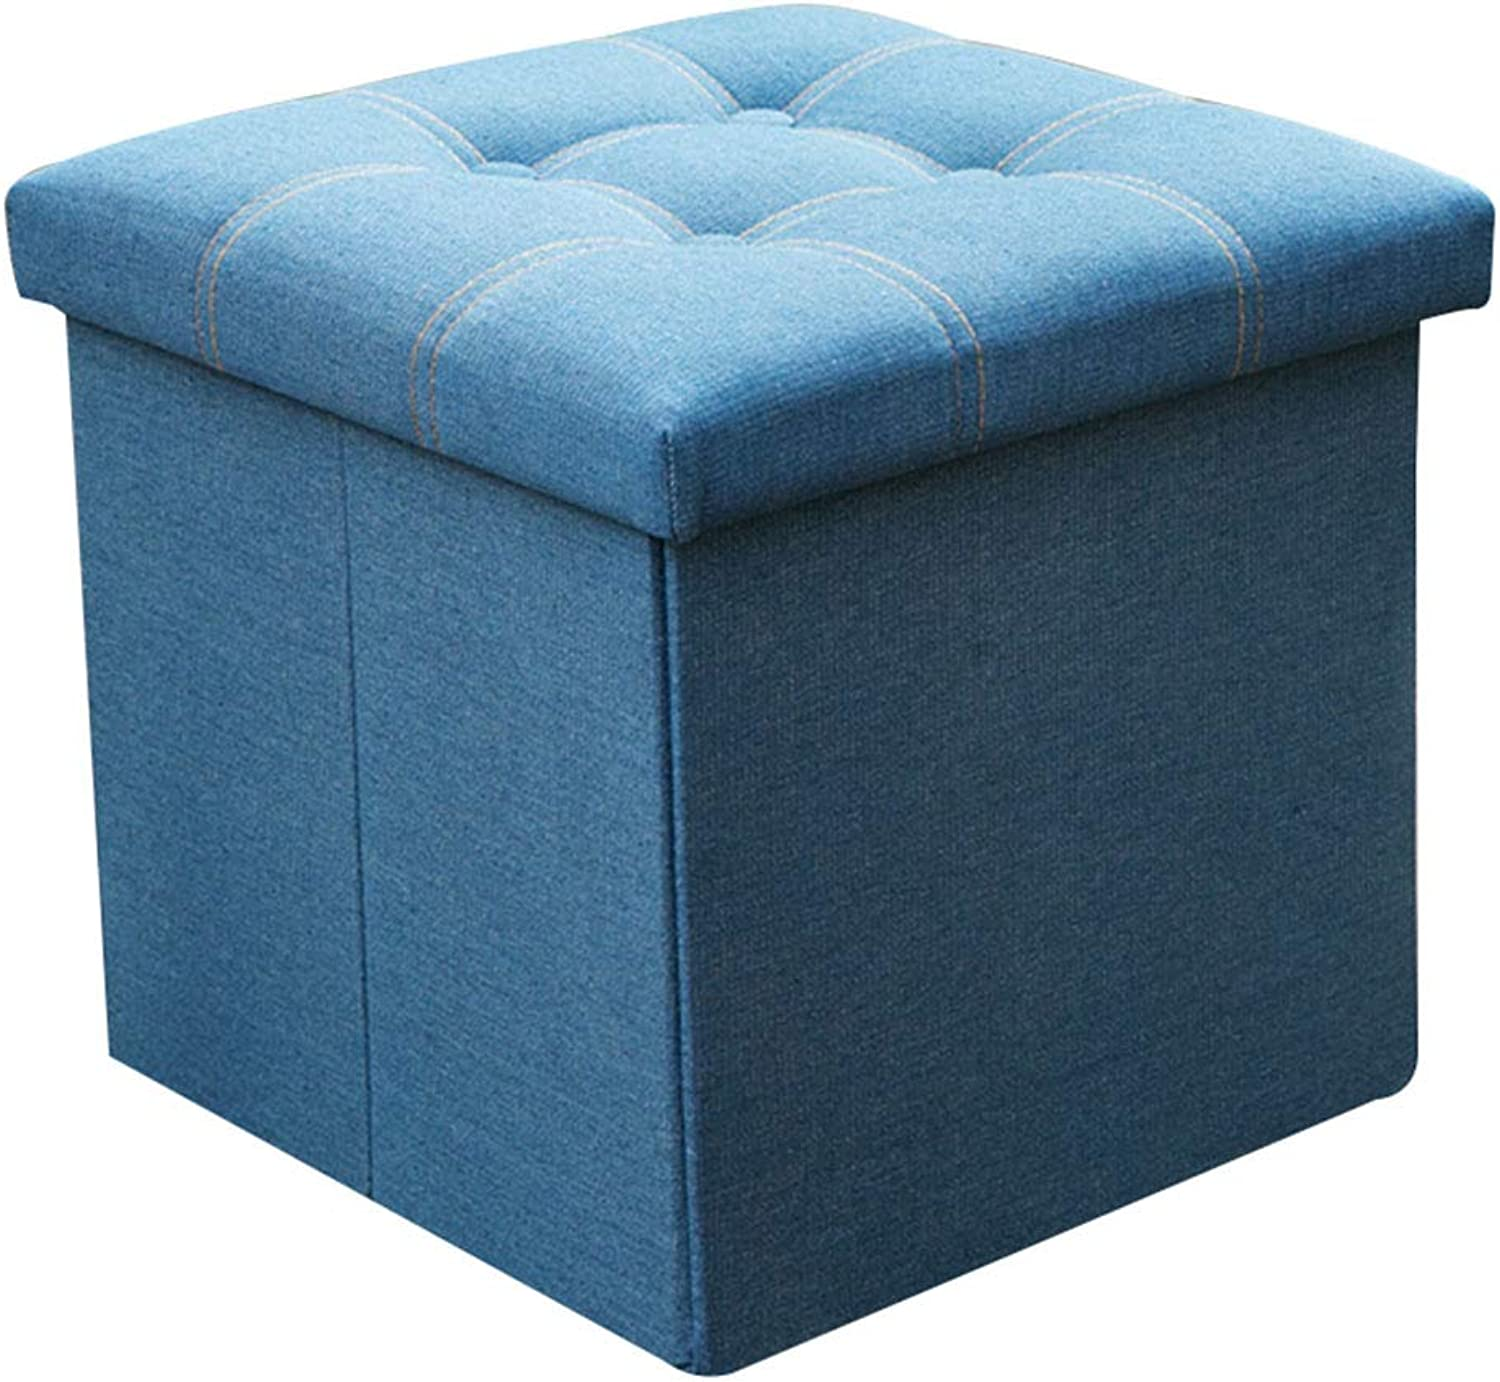 CAIJUN Footstool Multifunction Storage Canvas Fabric Thicken Wear Resistant Whole Outfit, 3 colors, 3 Sizes (color   C, Size   38x38x38cm)